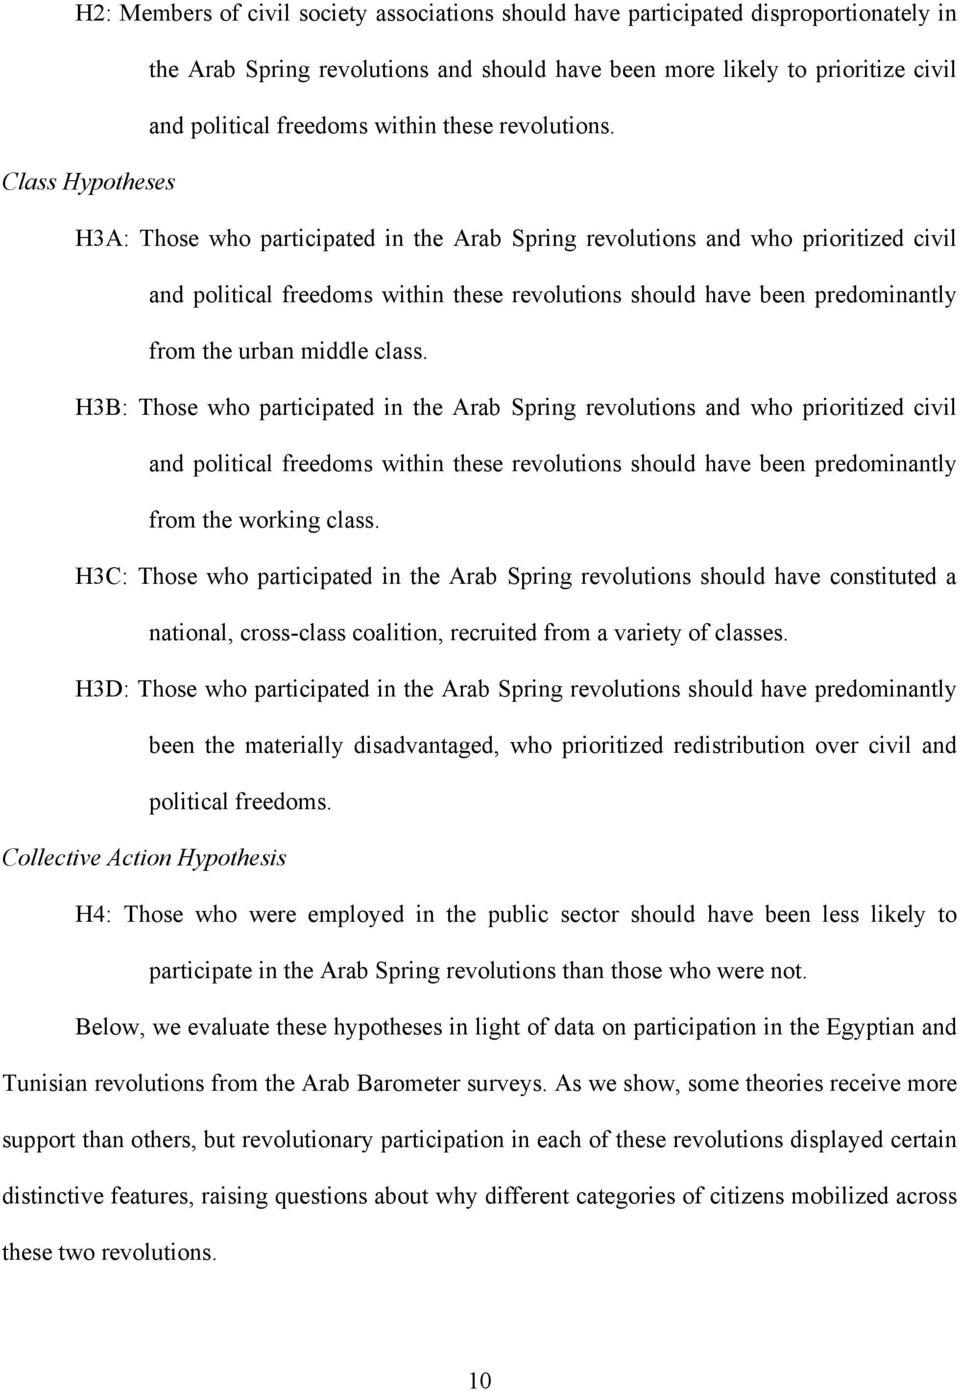 Class Hypotheses H3A: Those who participated in the Arab Spring revolutions and who prioritized civil and political freedoms within these revolutions should have been predominantly from the urban